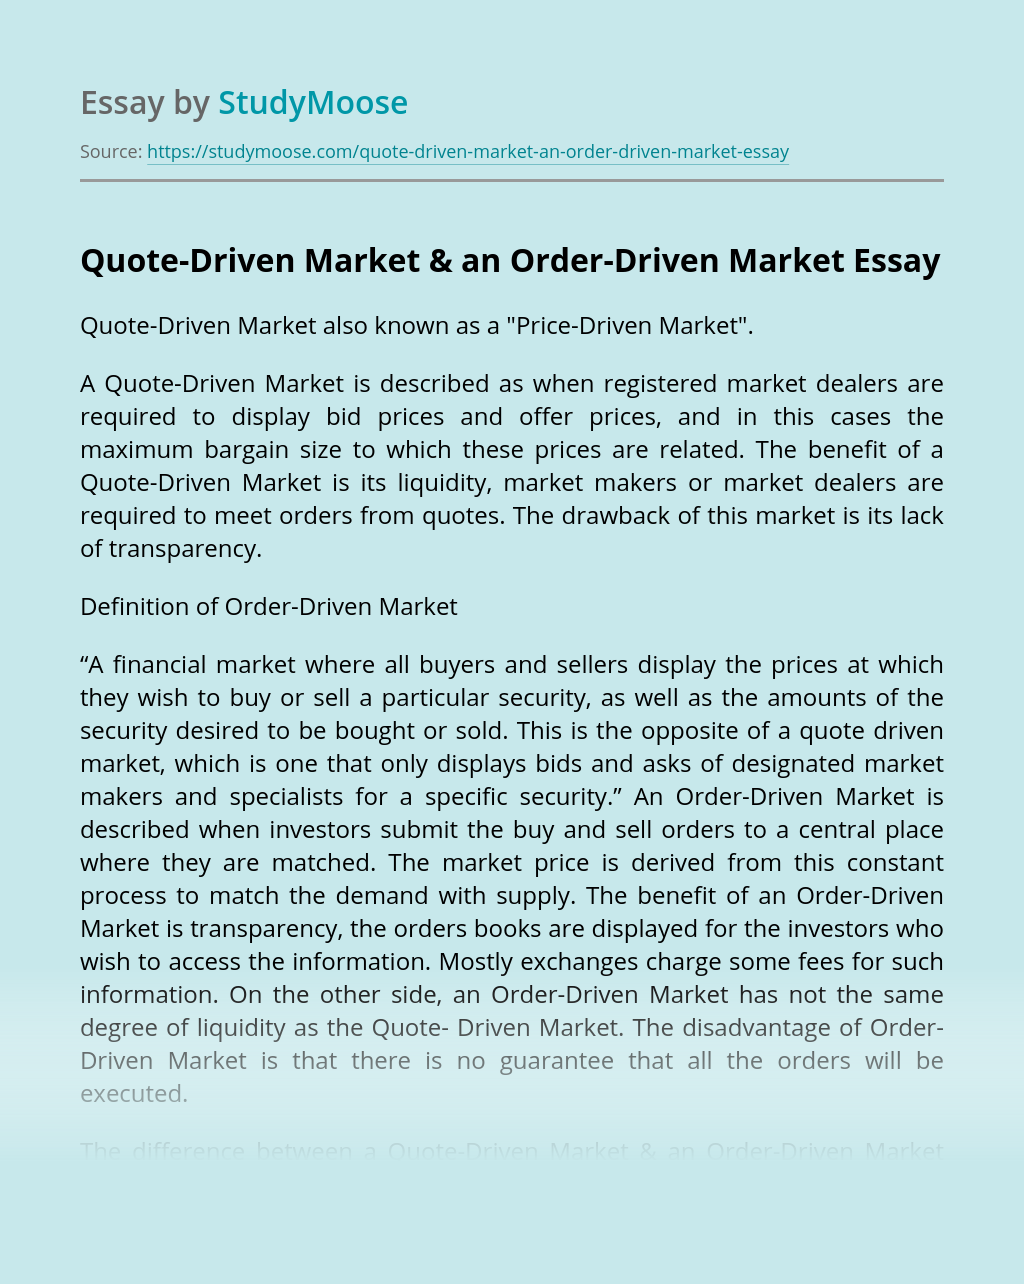 Quote-Driven Market & an Order-Driven Market